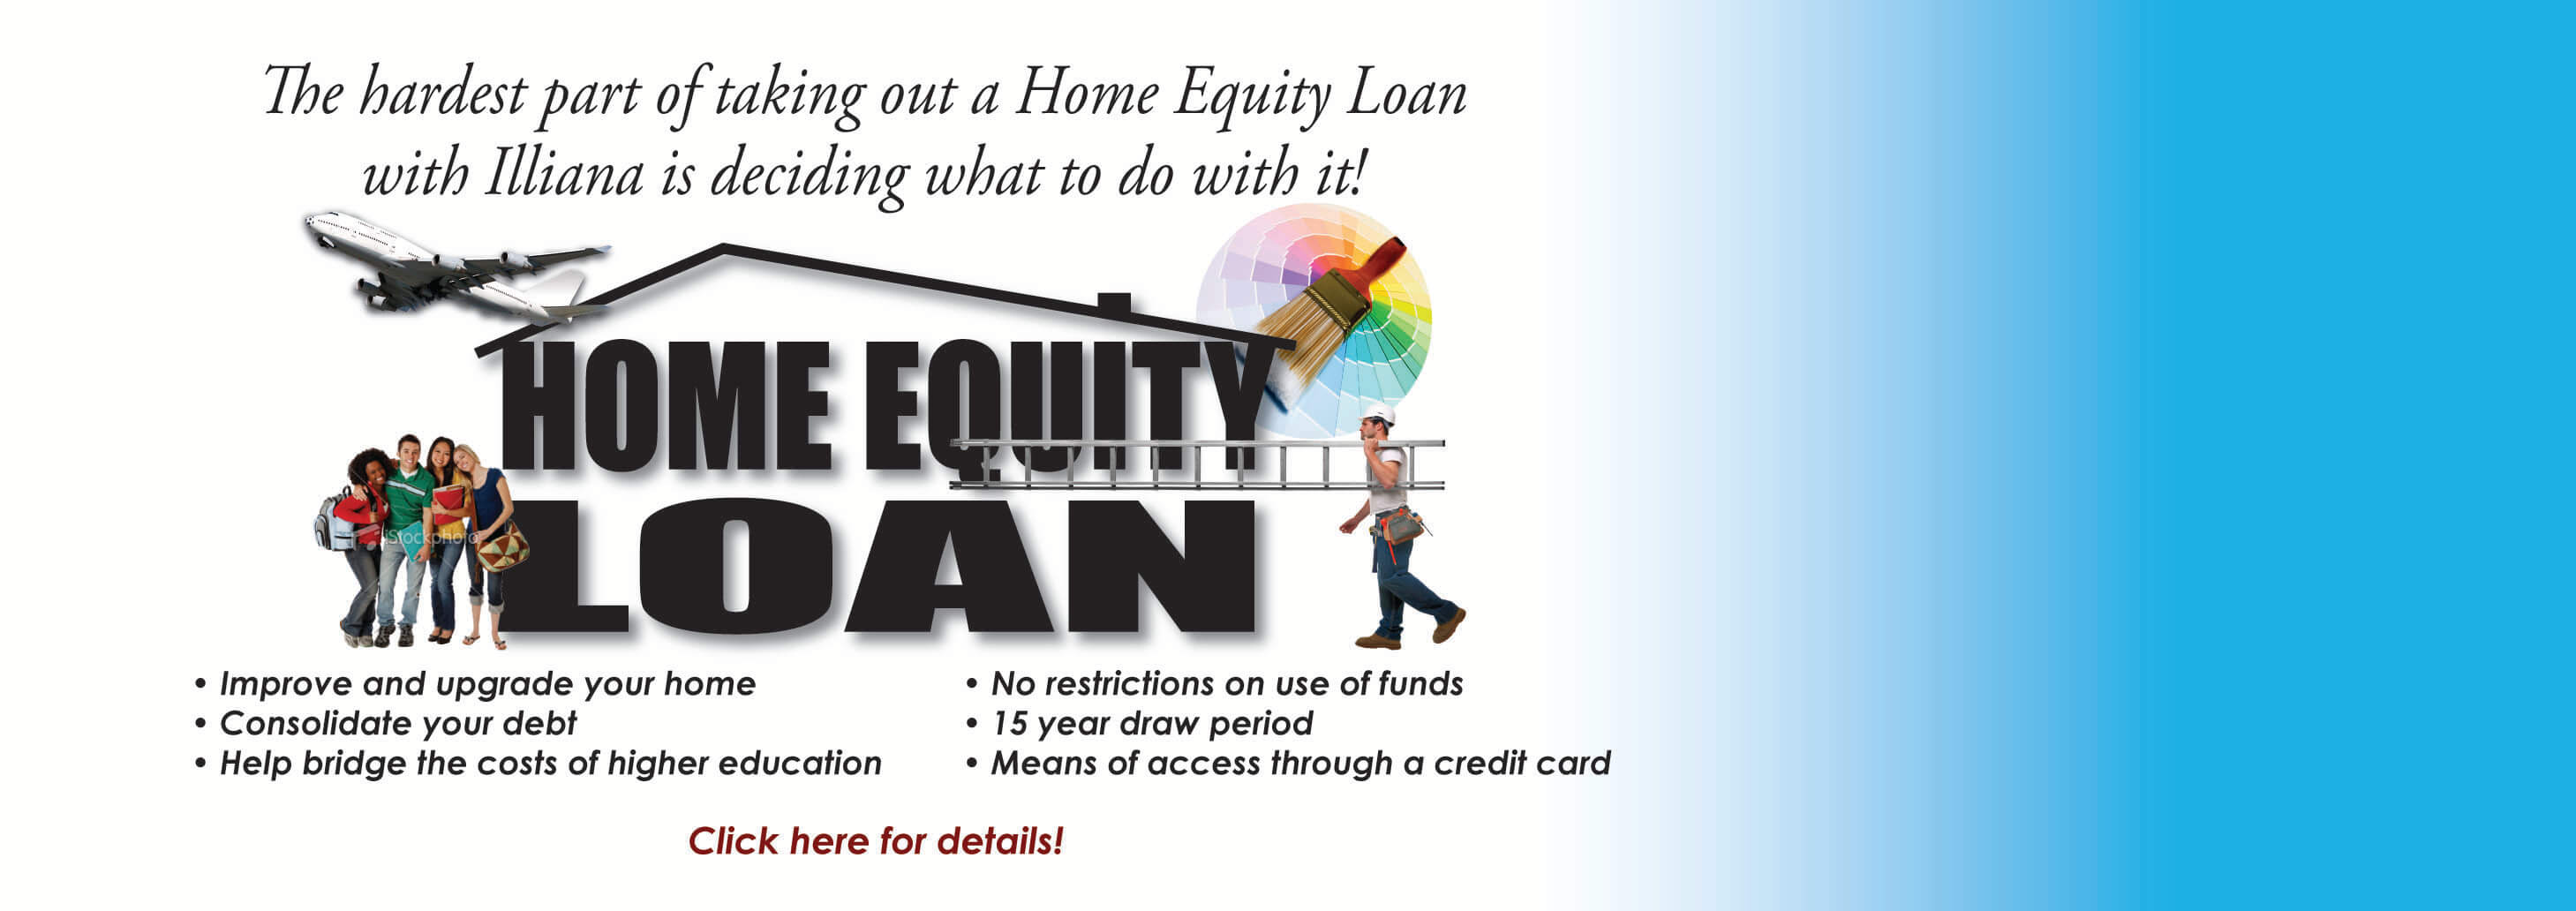 Home Equity Loan: The hardest part of taking out a Home Equity with Illiana is deciding what to do with it! Click for details.